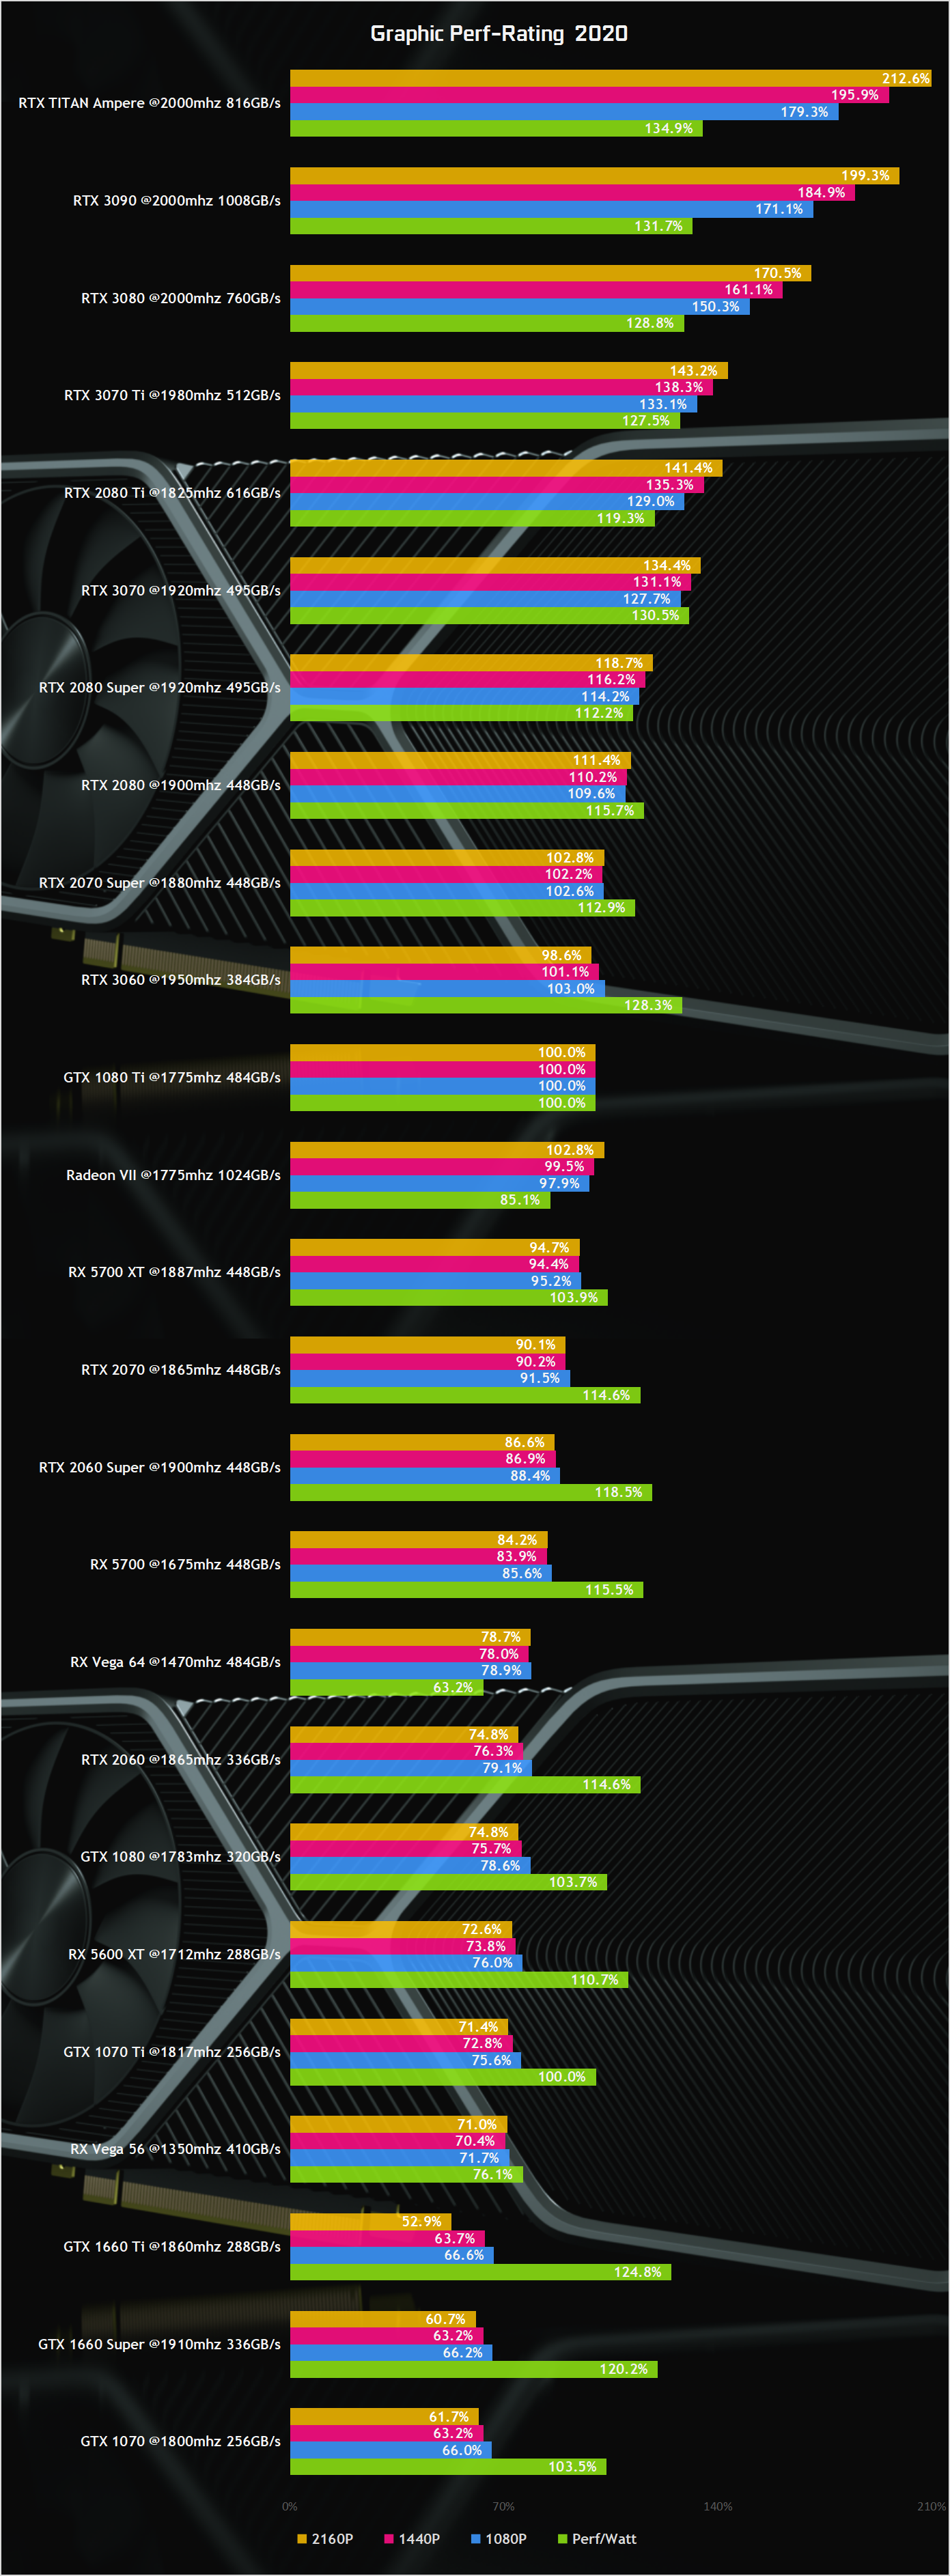 NVIDIA-GeForce-RTX-3090-GeForce-RTX-3080-GeForce-RTX-3070-TI-GeForce-RTX-3070-GeForce-RTX-3060-Gaming-Performance-Benchmarks.png